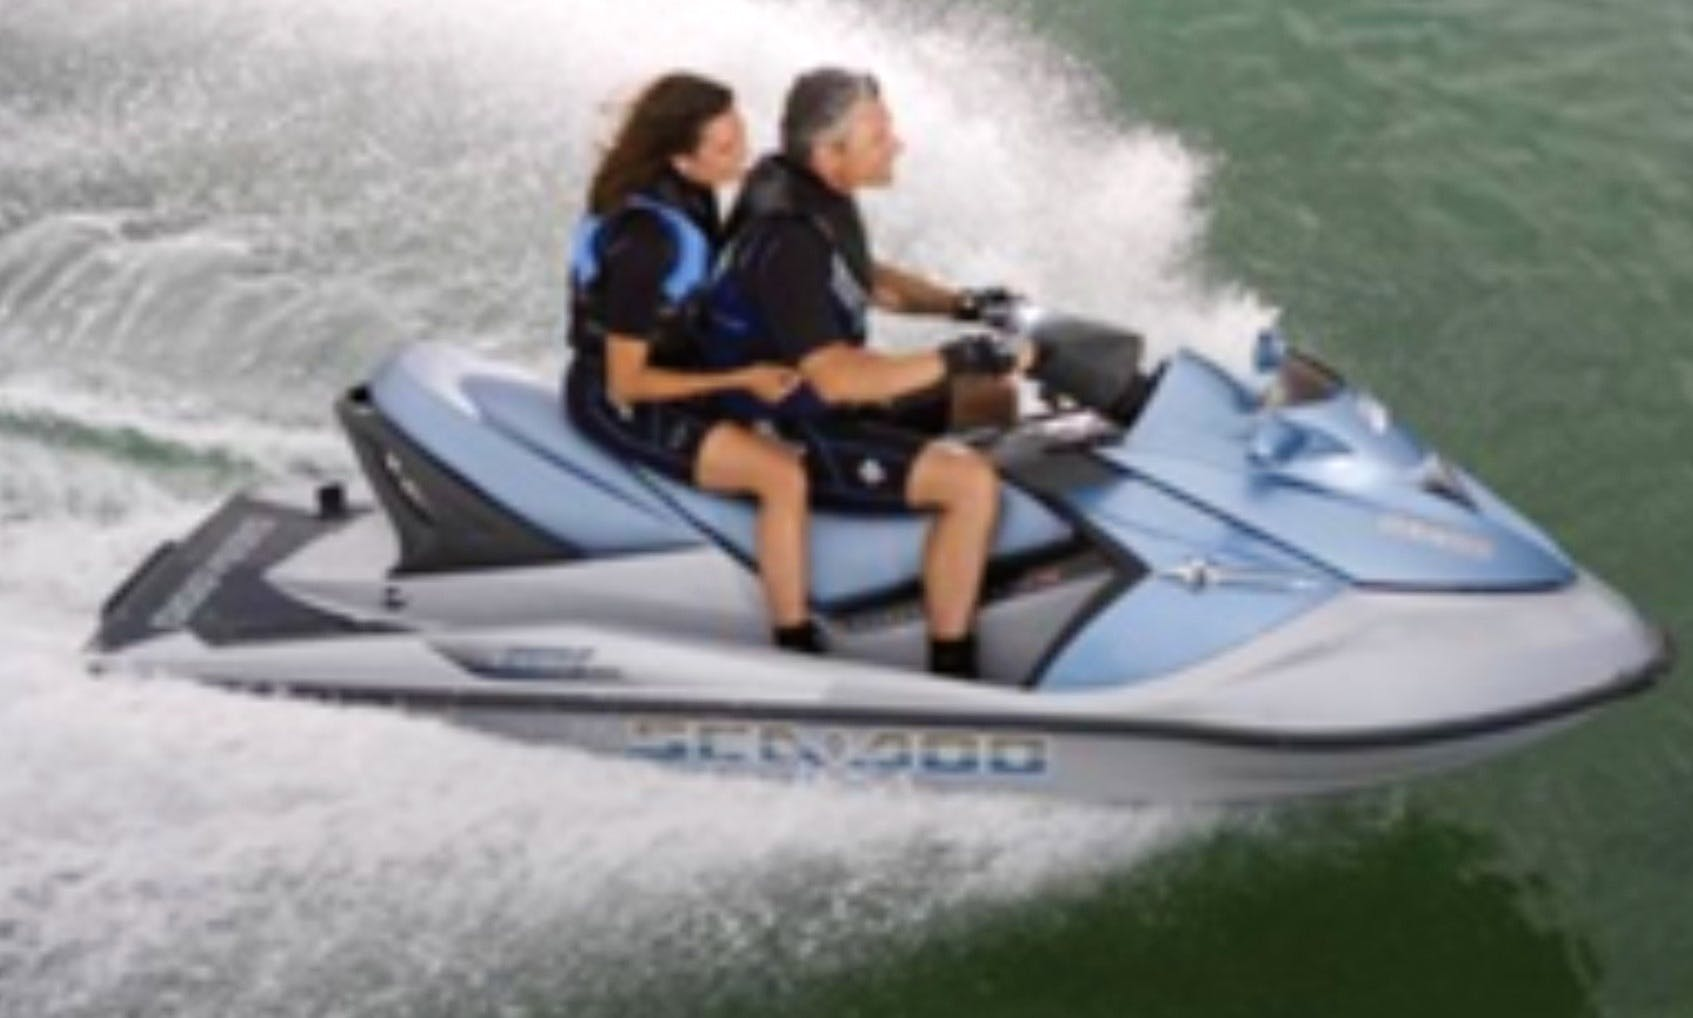 Jet Ski Rental in Lake Ozark, Missouri